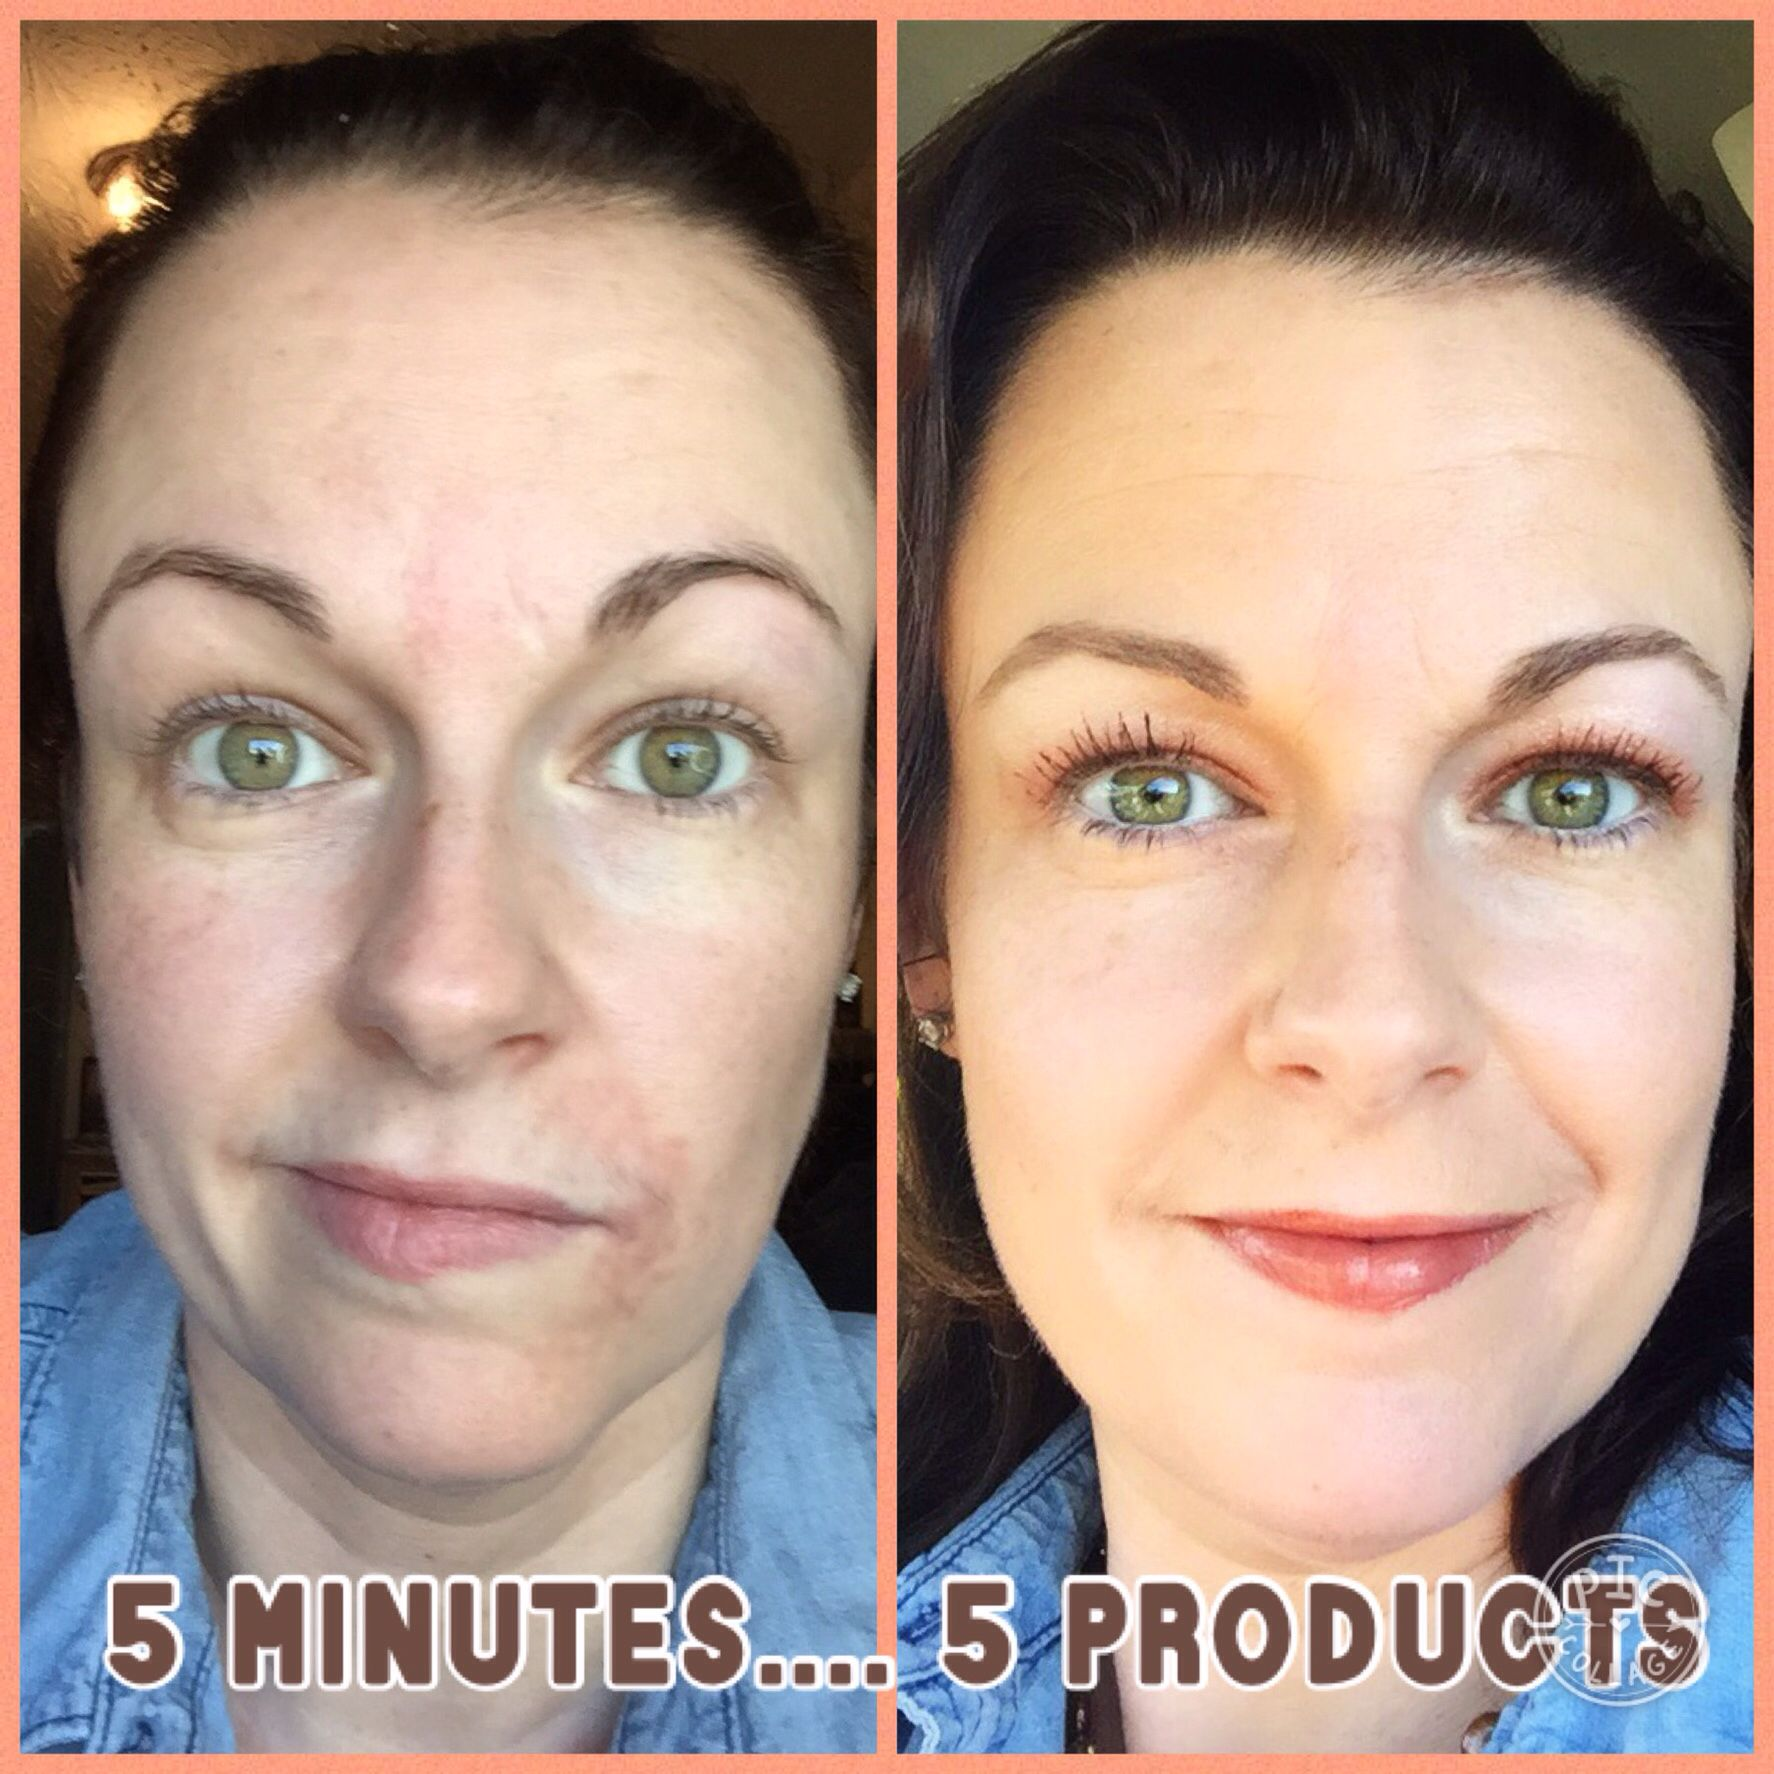 Healthy products can transform your look quickly and easily! www.lashgeeklab.com